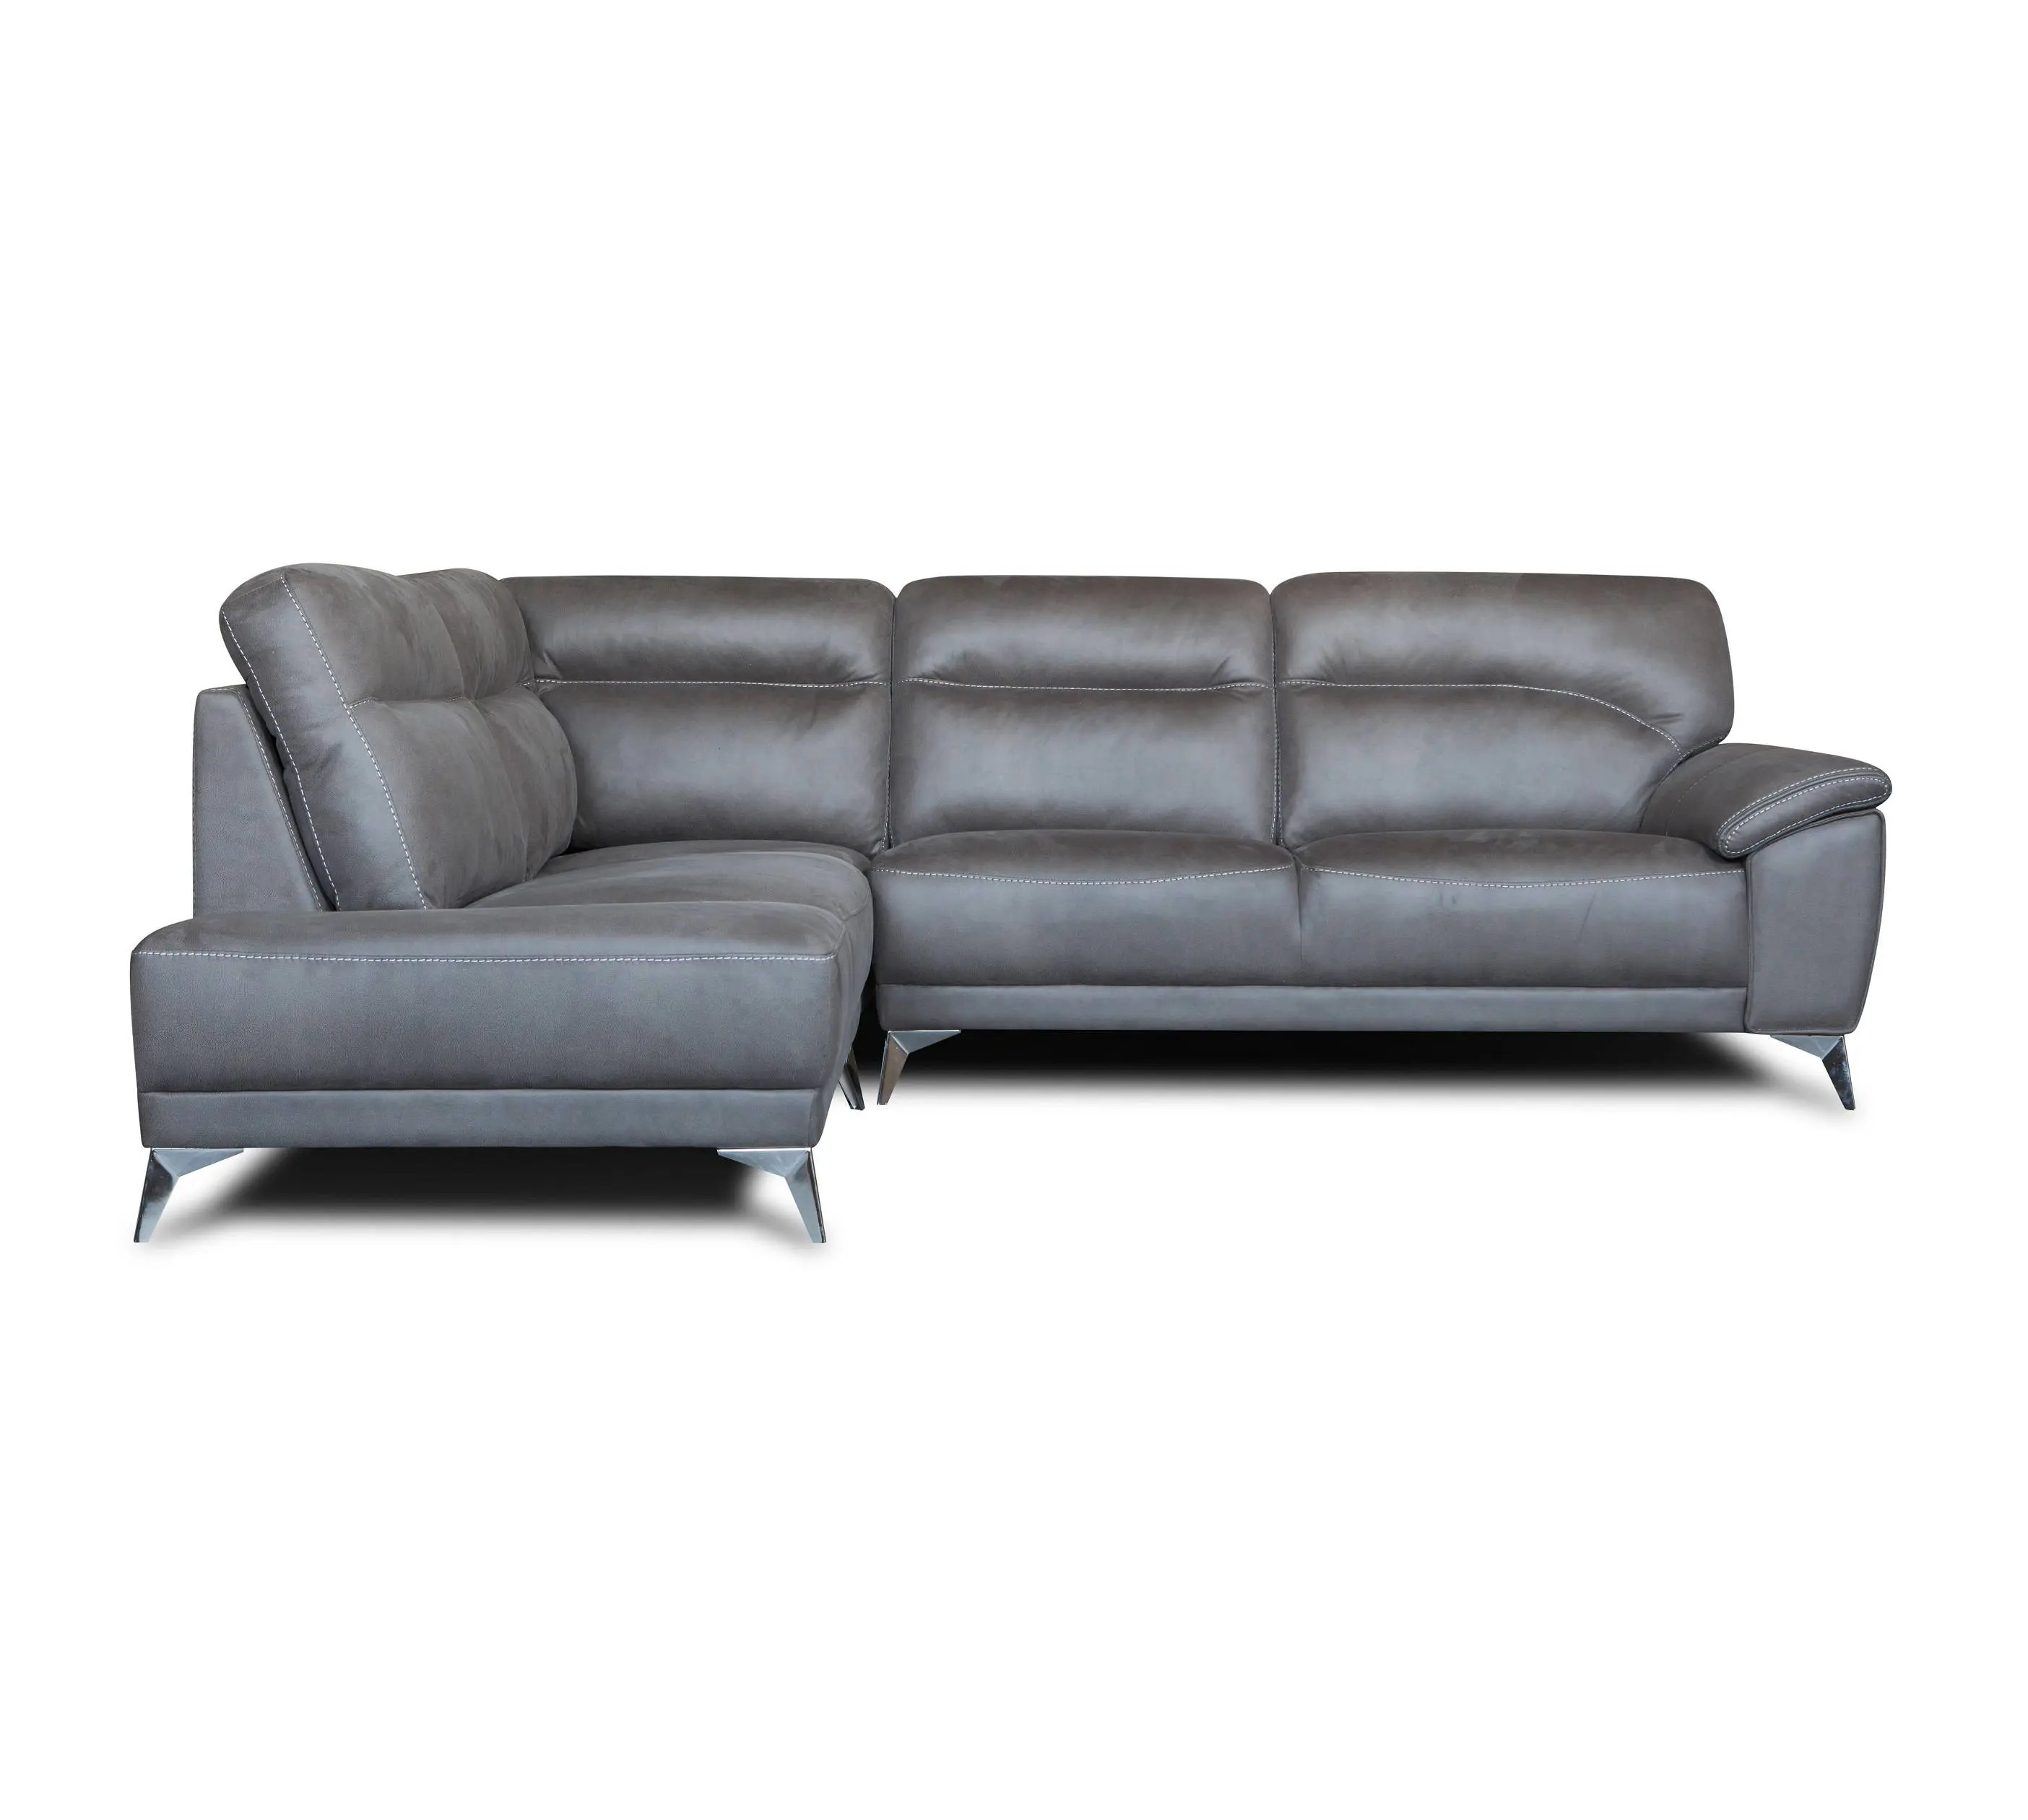 Sectional Sofa Manufacturers Suppliers China Sectional Sofa Factory